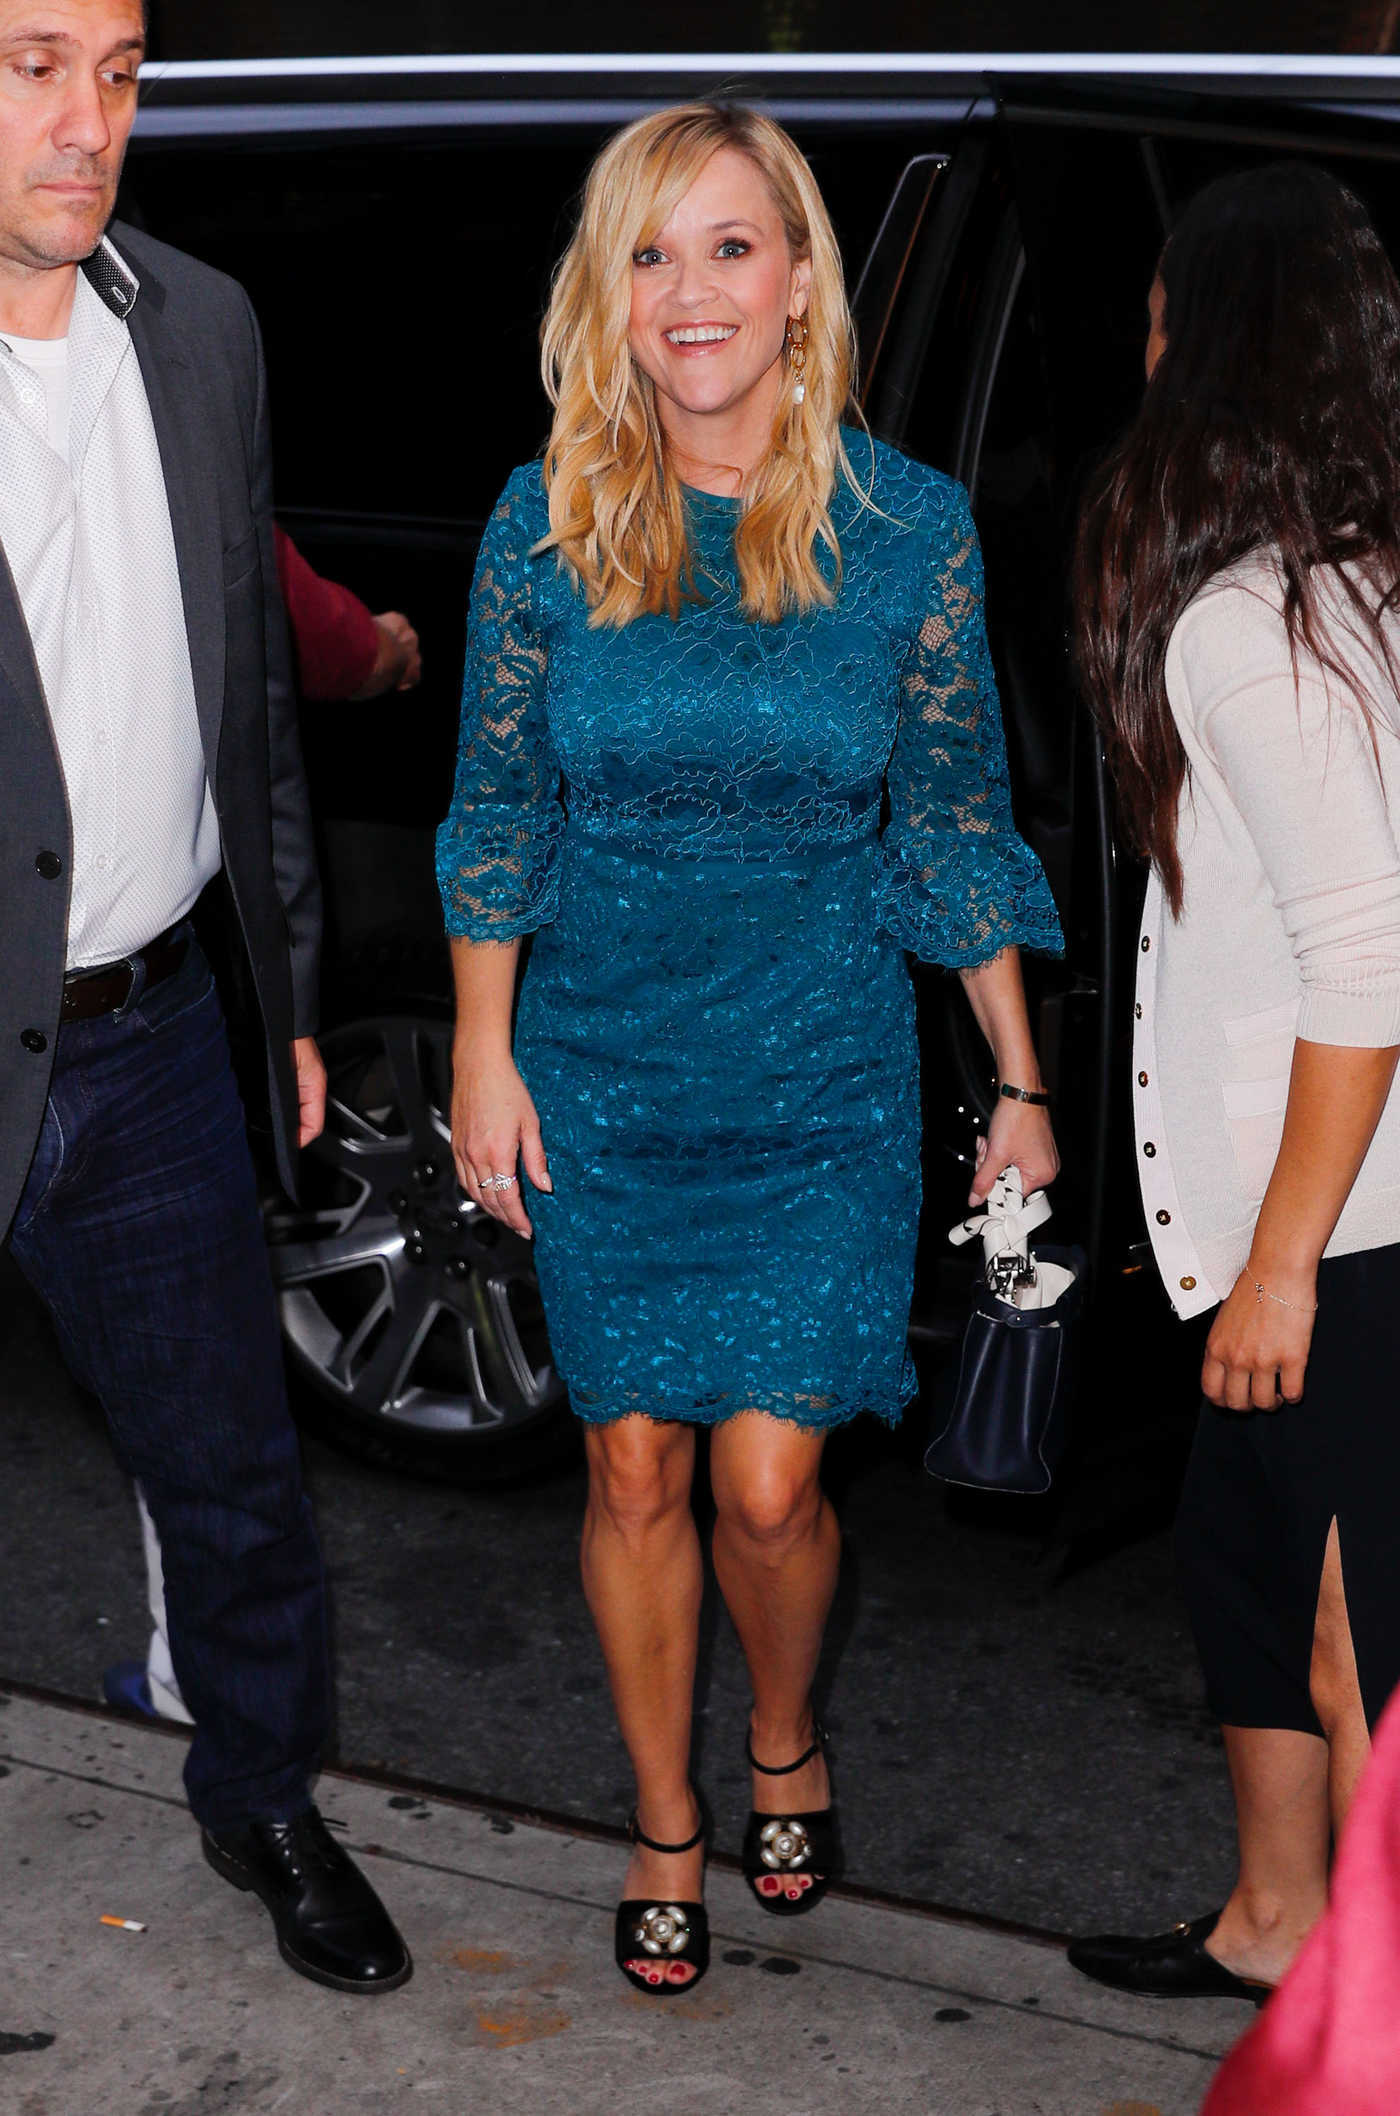 Reese Witherspoon in a Blue Dress Was Seen Out in NYC 09/17/2018